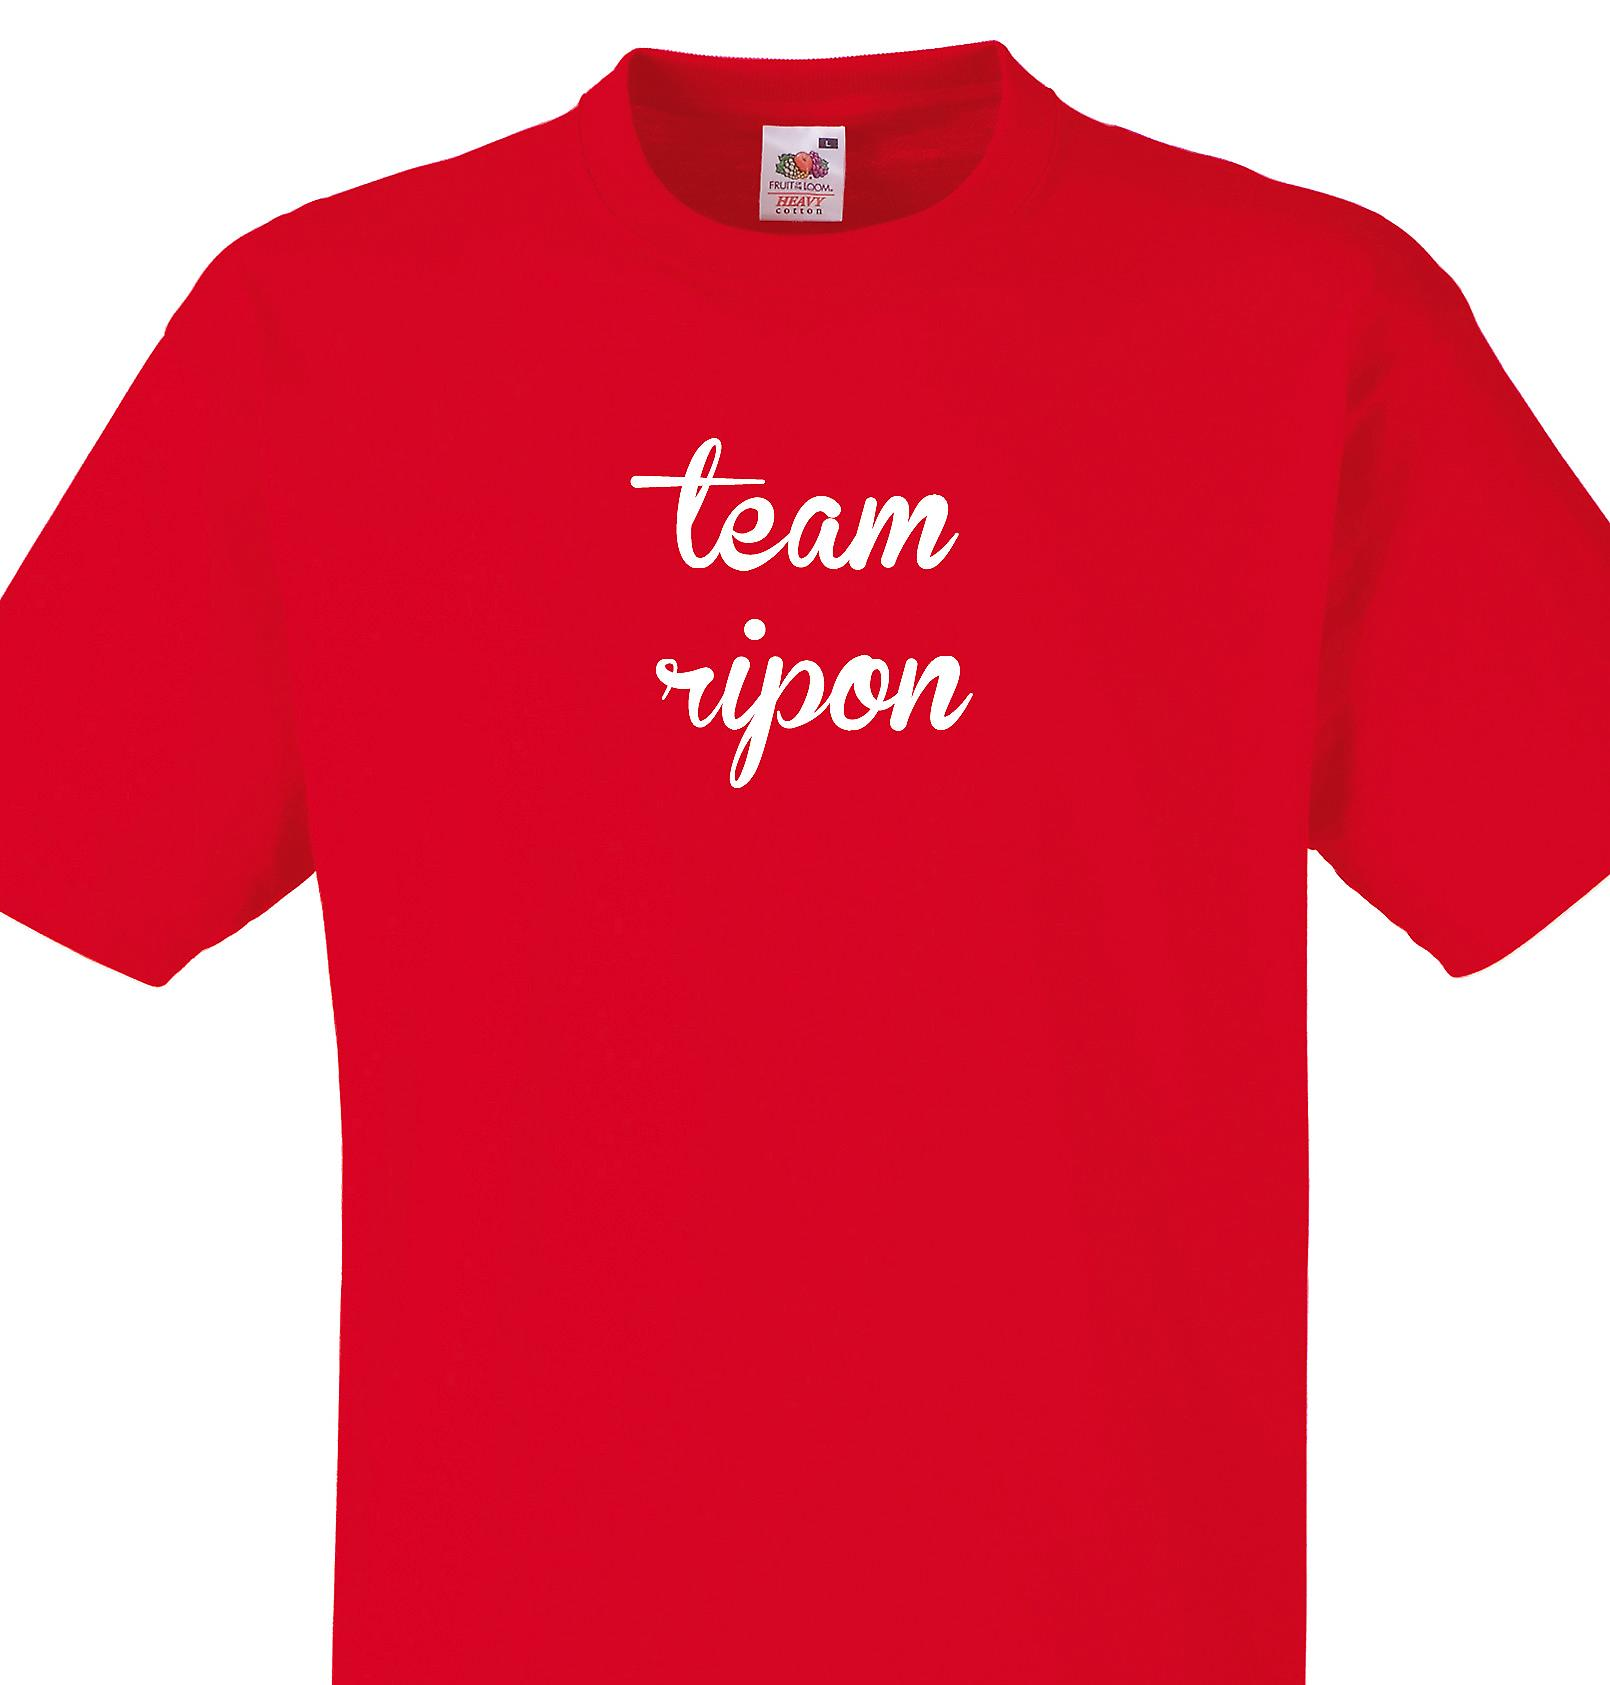 Team Ripon Red T shirt